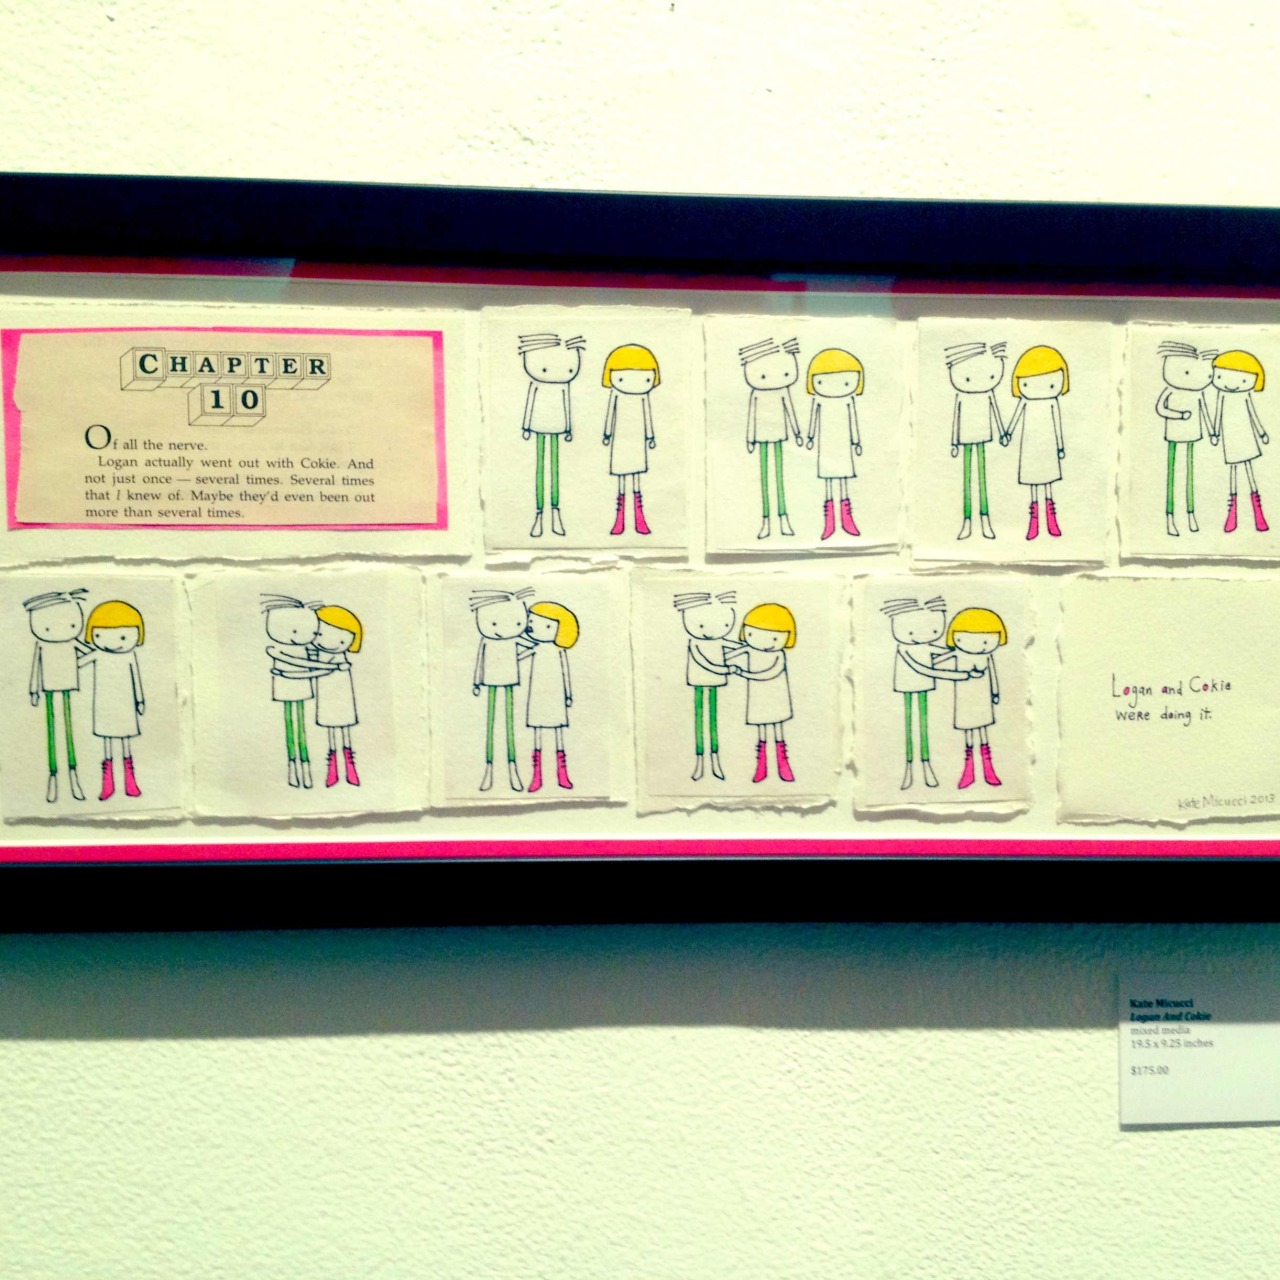 Last night was the opening of the HelloGiggles art show at Gallery 1988.  The show is called Young Adult and is based on teen novels from the 80s and 90s.  My piece is called Logan and Cokie and is based on a Baby-Sitter's Club book.  The show runs until February 23 at Gallery 1988 Melrose in Los Angeles.